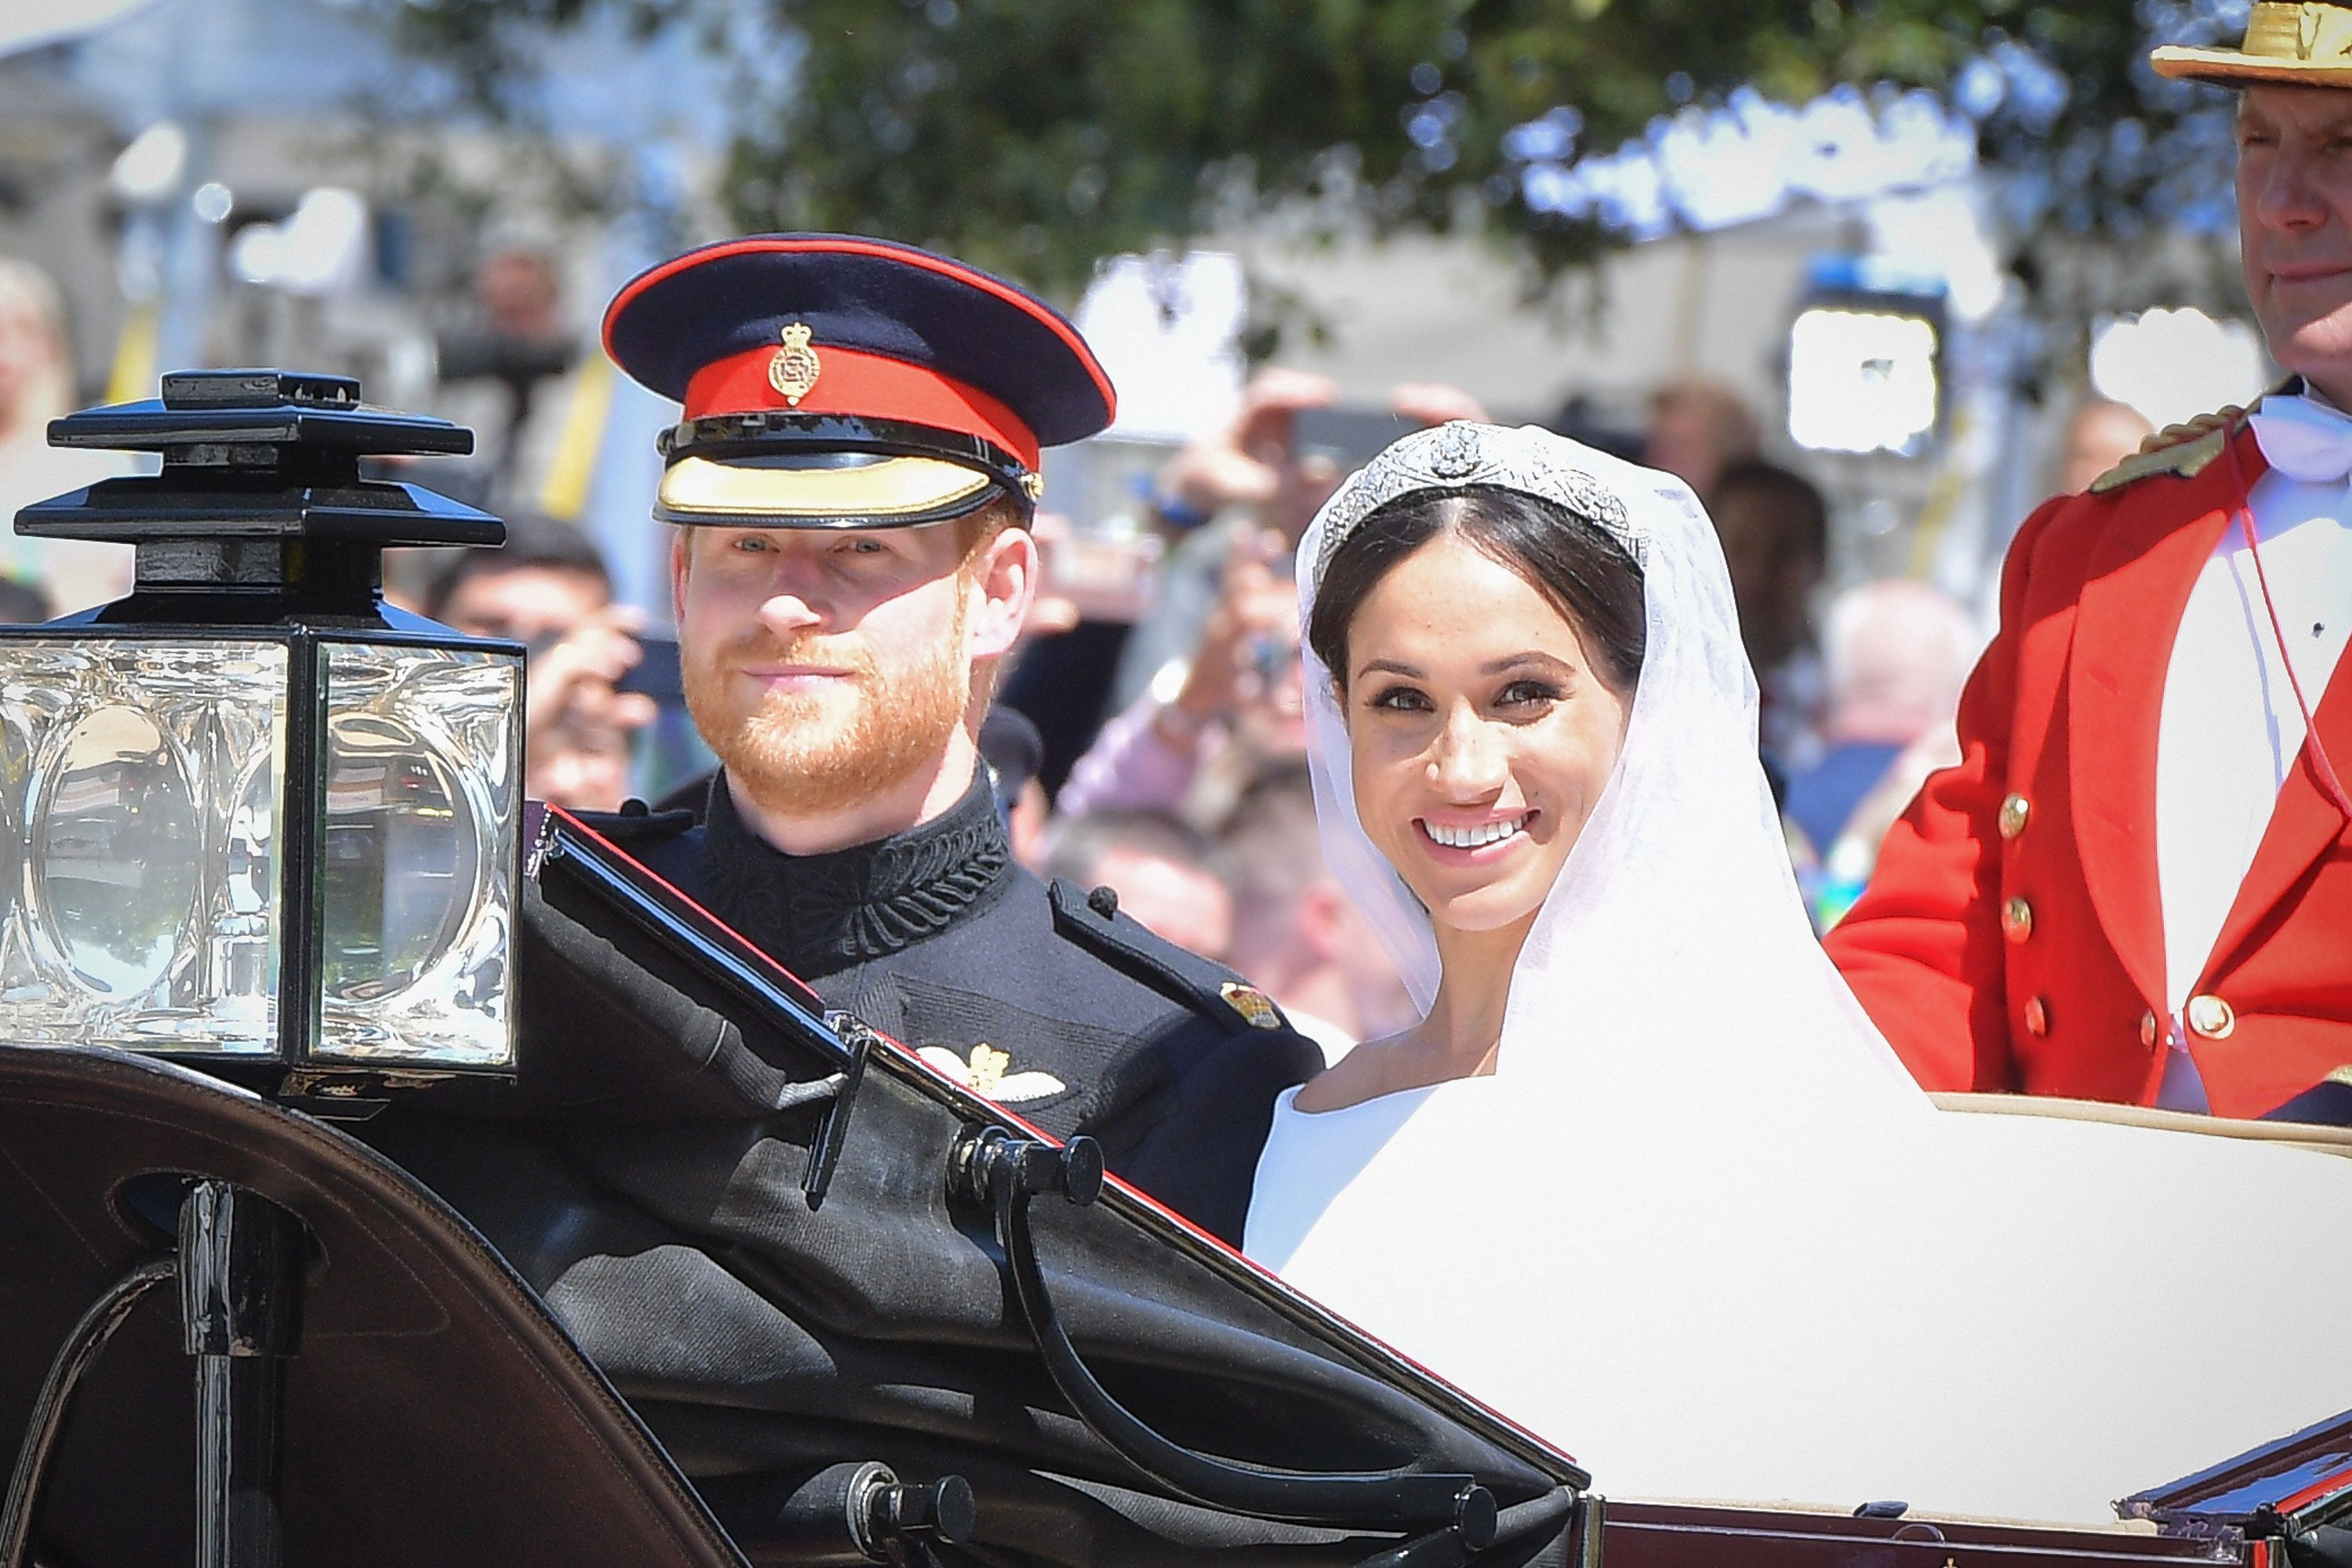 With an event as planned-to-a-T as the royal wedding, you wouldn't think there would be many surprises left for the bride, but Meghan got one big one courtesy of a surprise guest . As the couple rose through London in their carriage after the ceremony, Meghan caught sight of a familiar face in the crowd—her former drama teacher Gigi Perreau who was a guest and contributor to ITV.